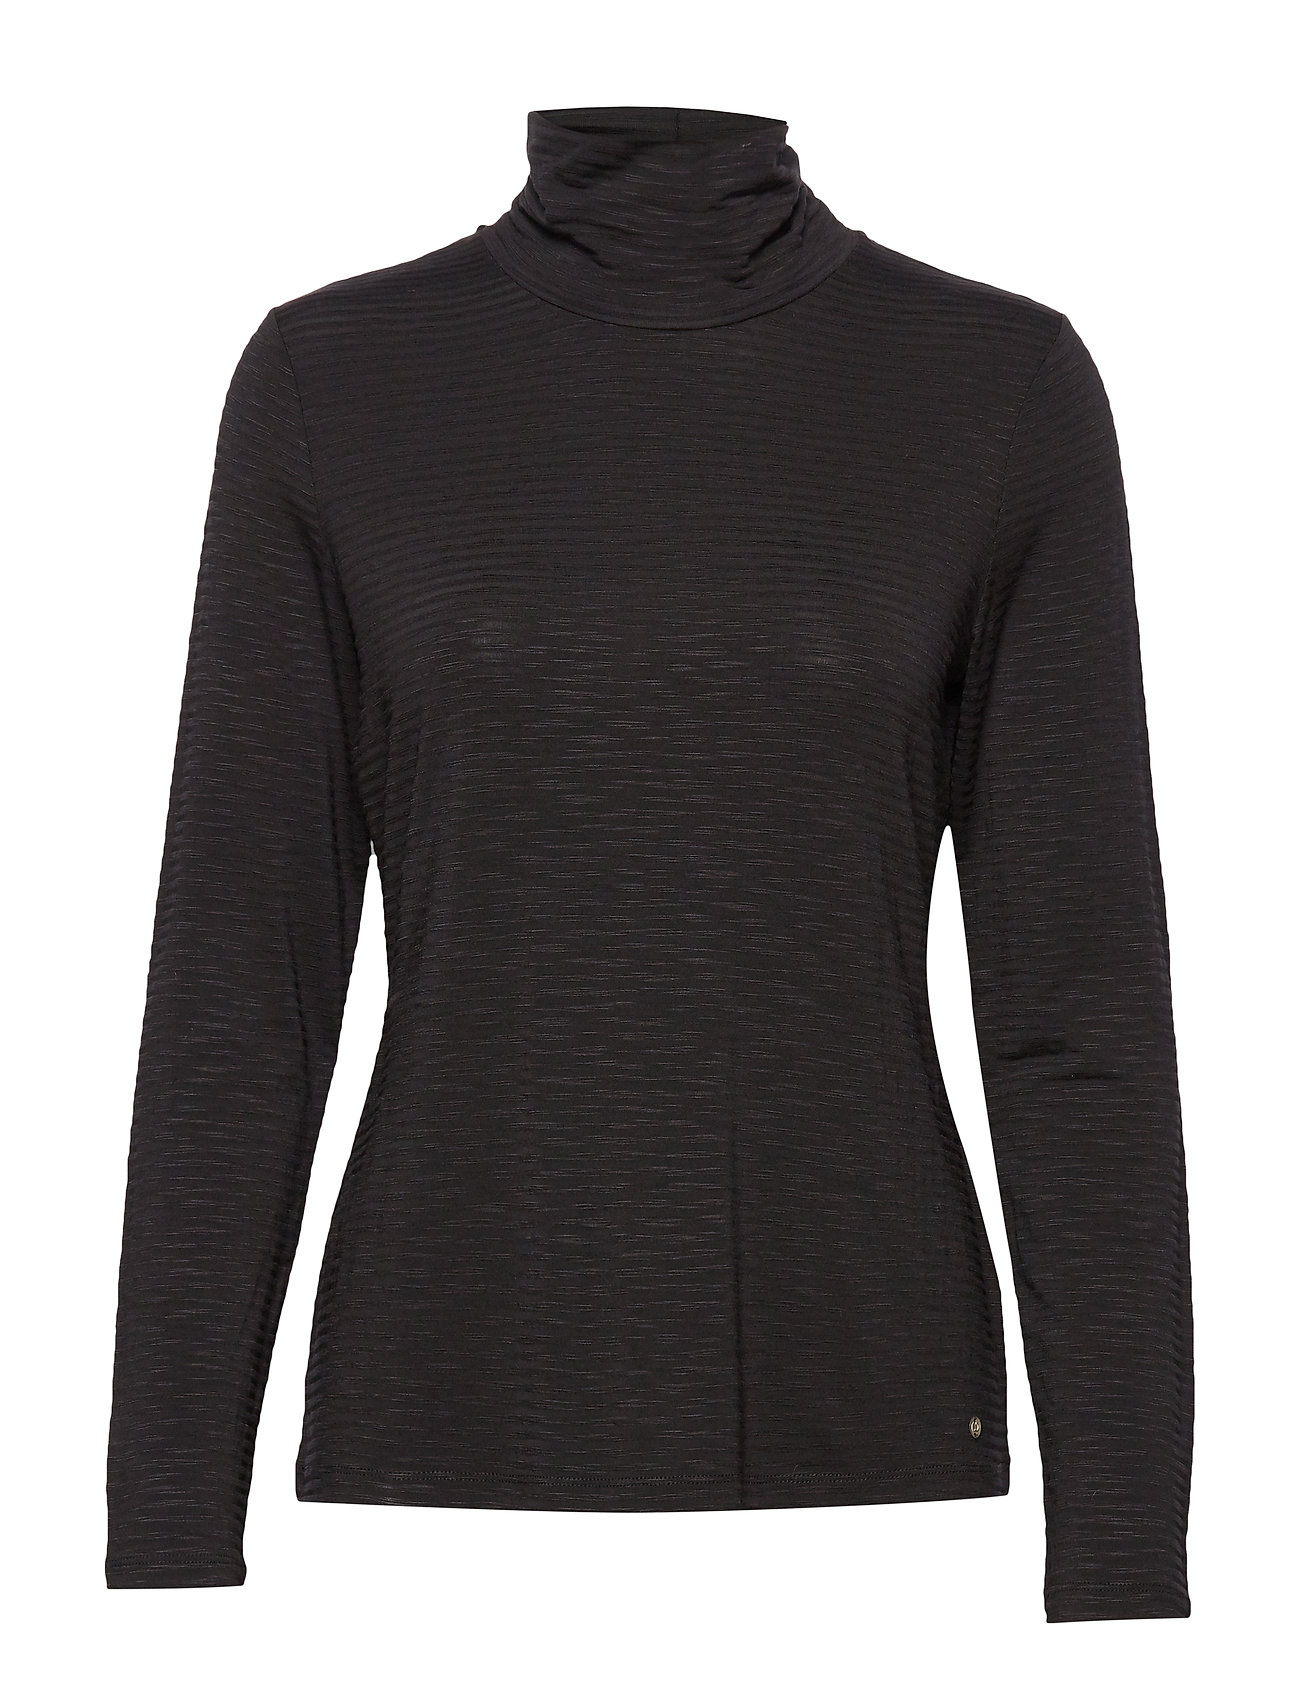 Gerry Weber Edition T-SHIRT LONG-SLEEVE - BLACK